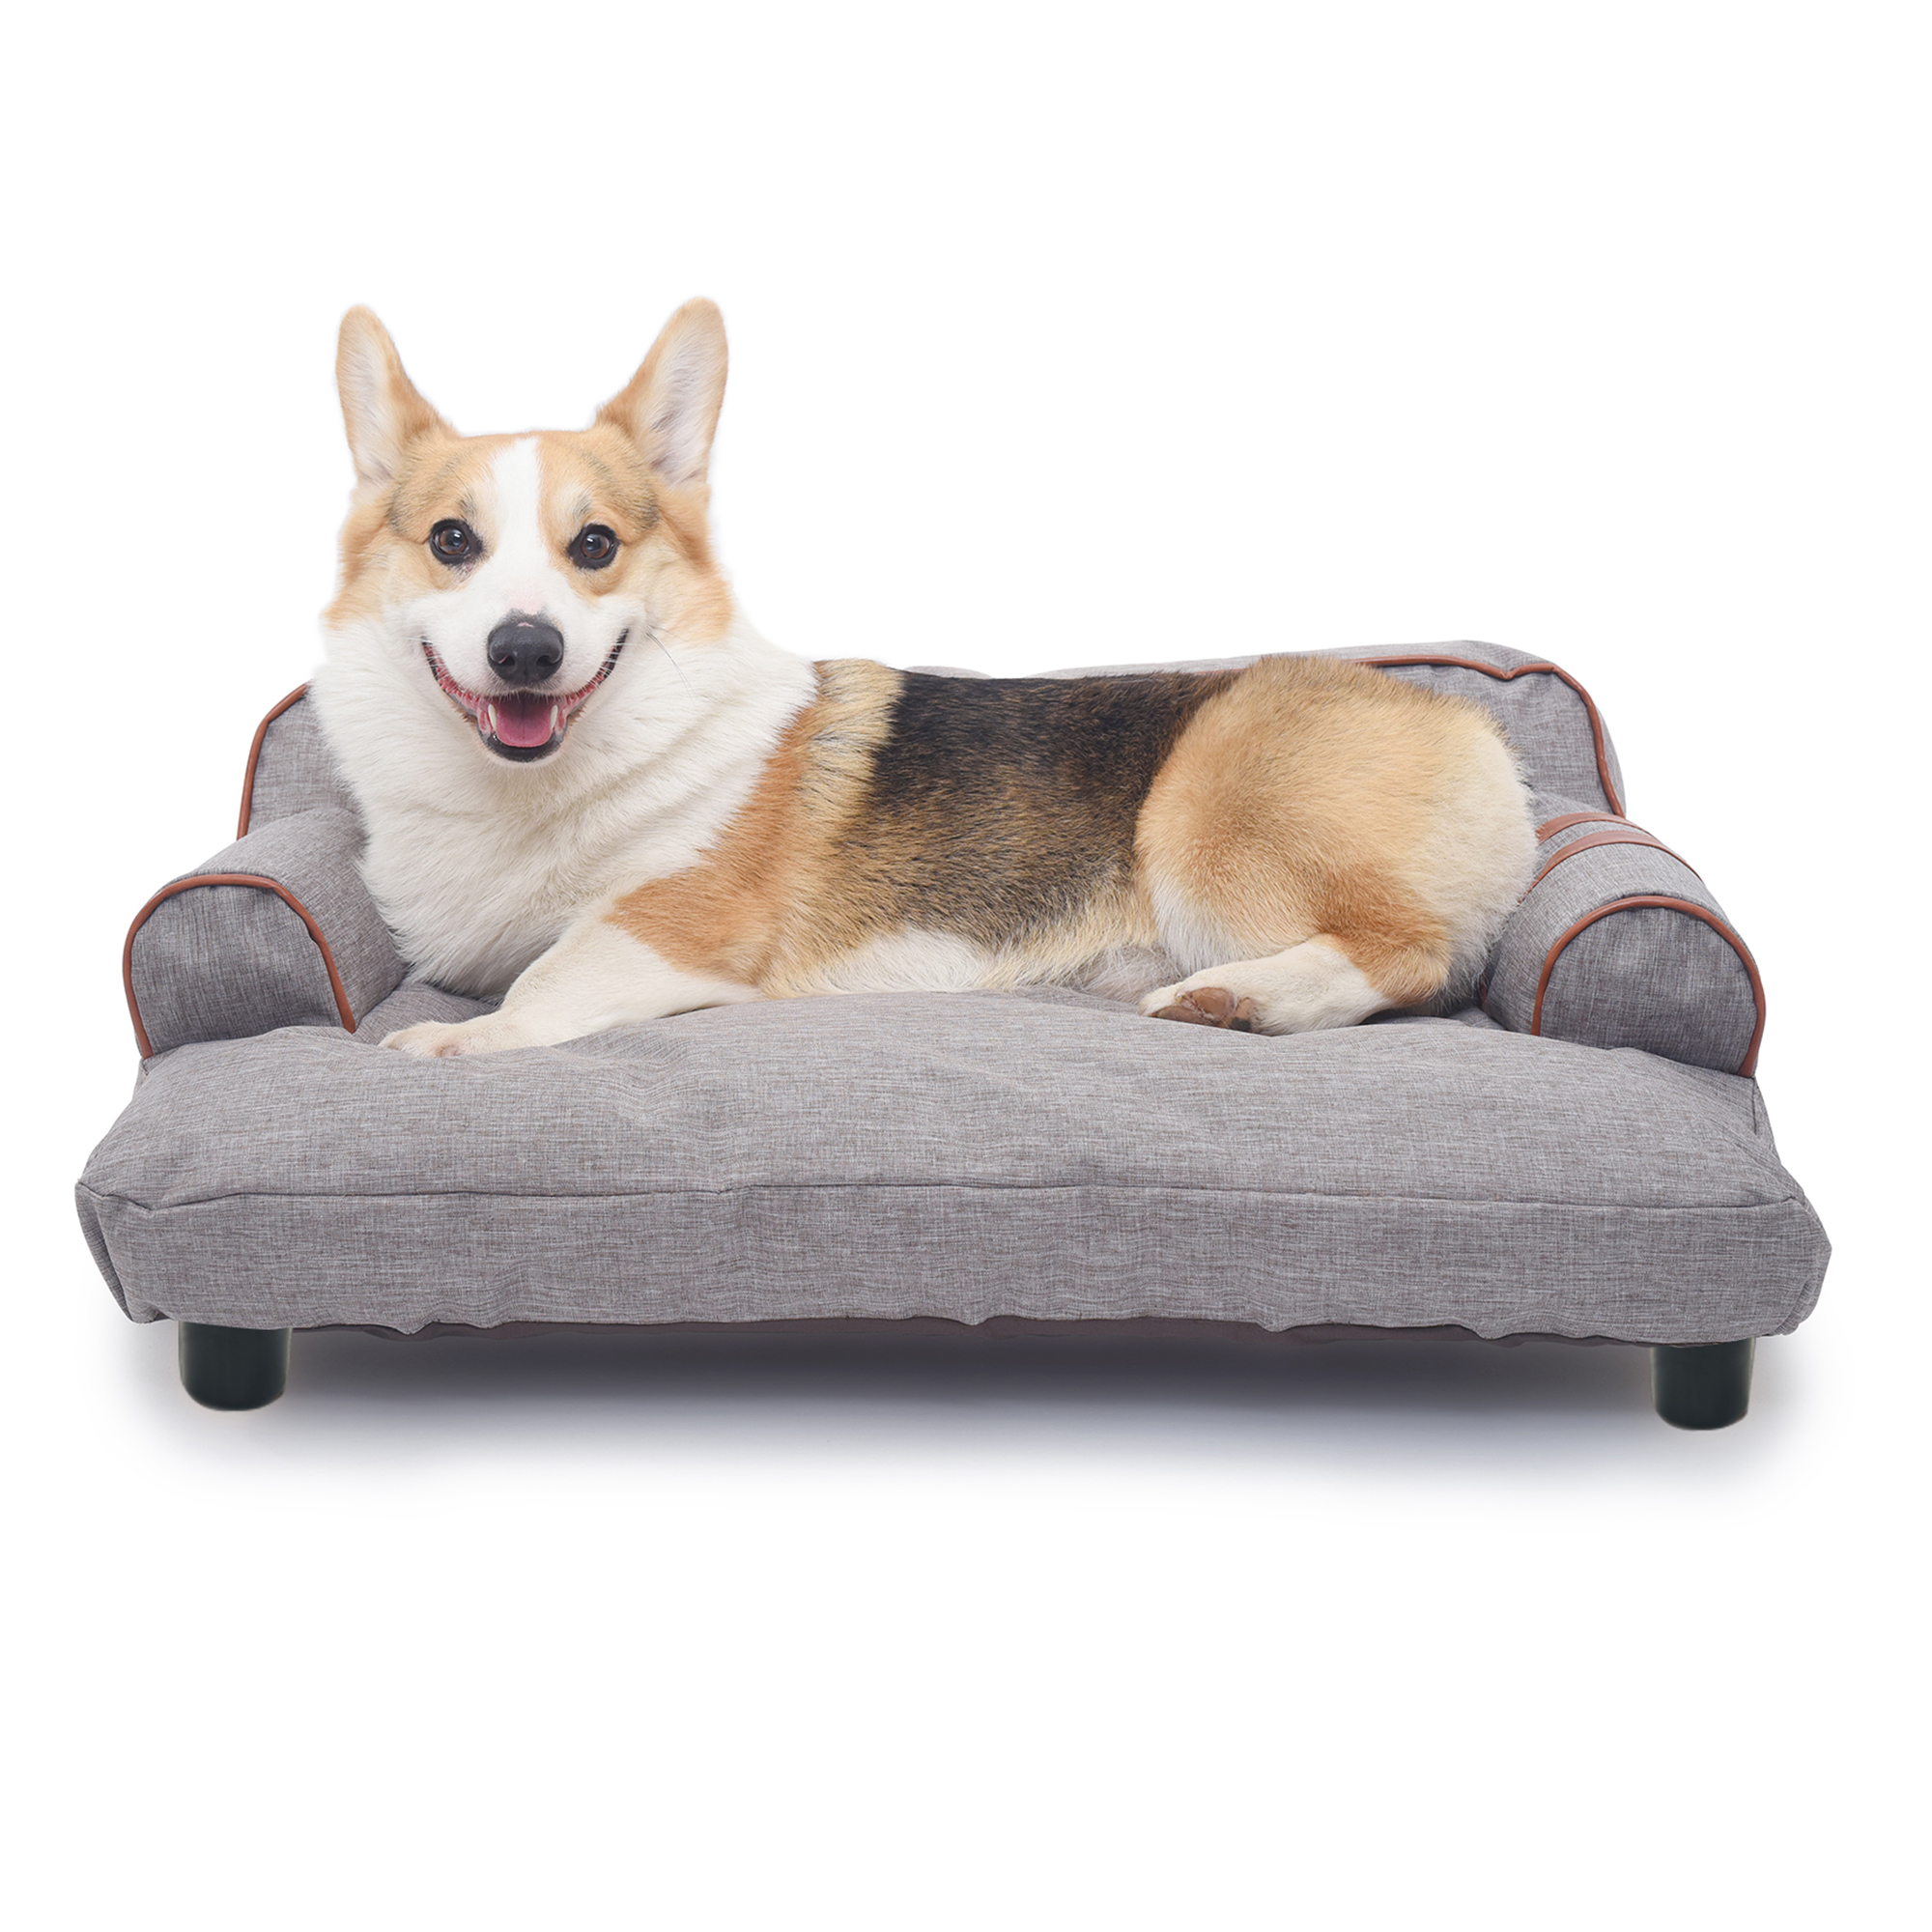 Picture of: Urhomepro Pet Beds For Medium Dogs Dog Beds For Small Dogs Cat Beds For Medium Cats Dog Bed Soft Washable Dog Cat Fabric Pet Sofa Bed Cat Bed Bed Built In Elevated Platform